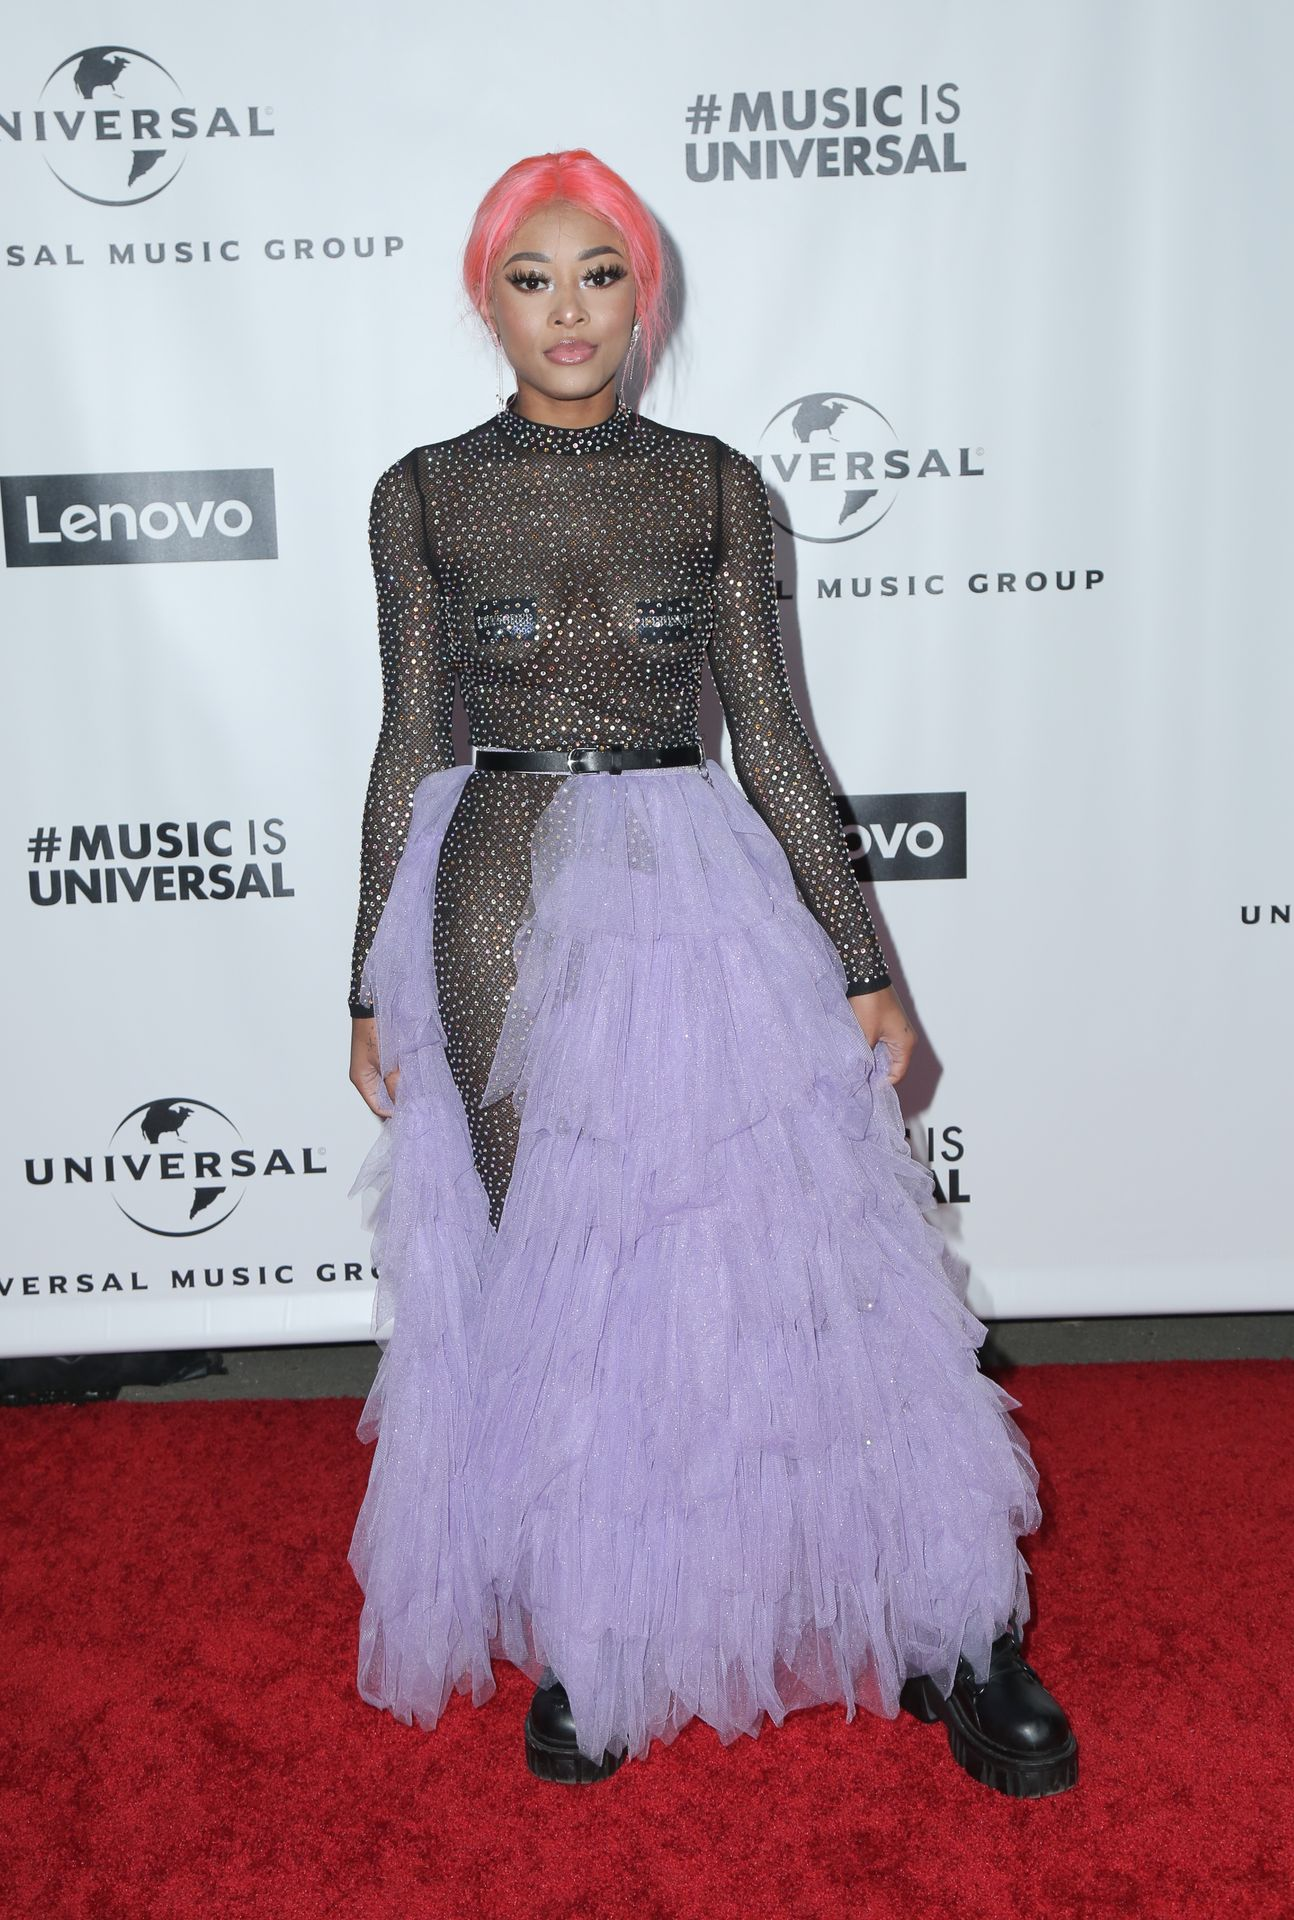 Maya B's Tits At The Universal Music Group's Grammy After Party 0002